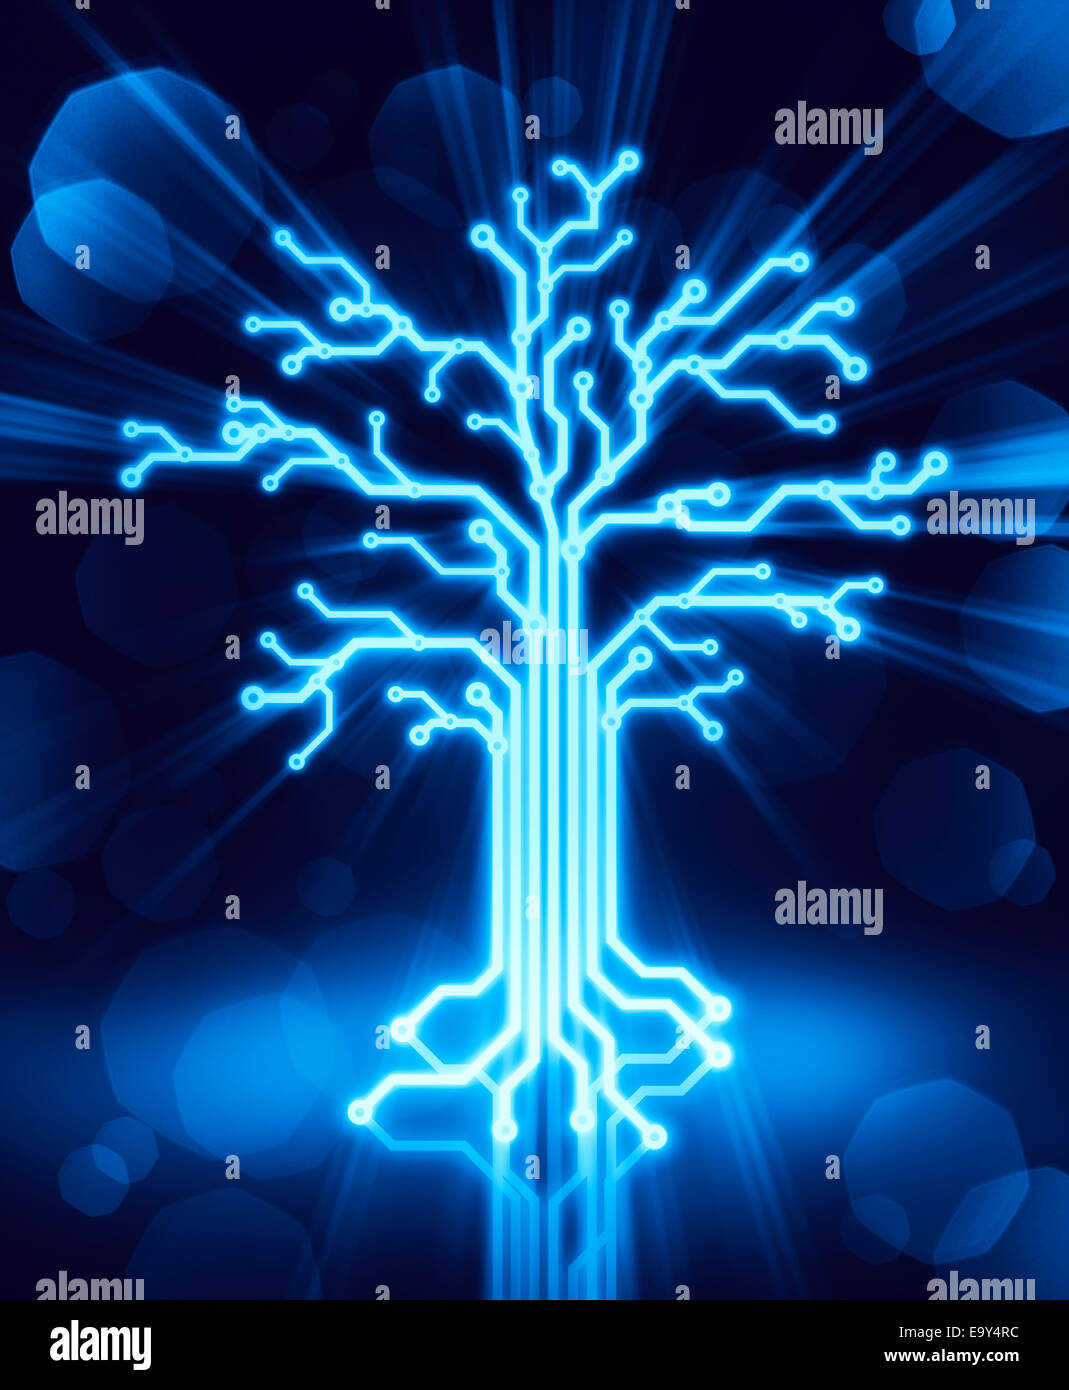 Glowing digital tree made of circuits, conceptual illustration blue on black background - Stock Image